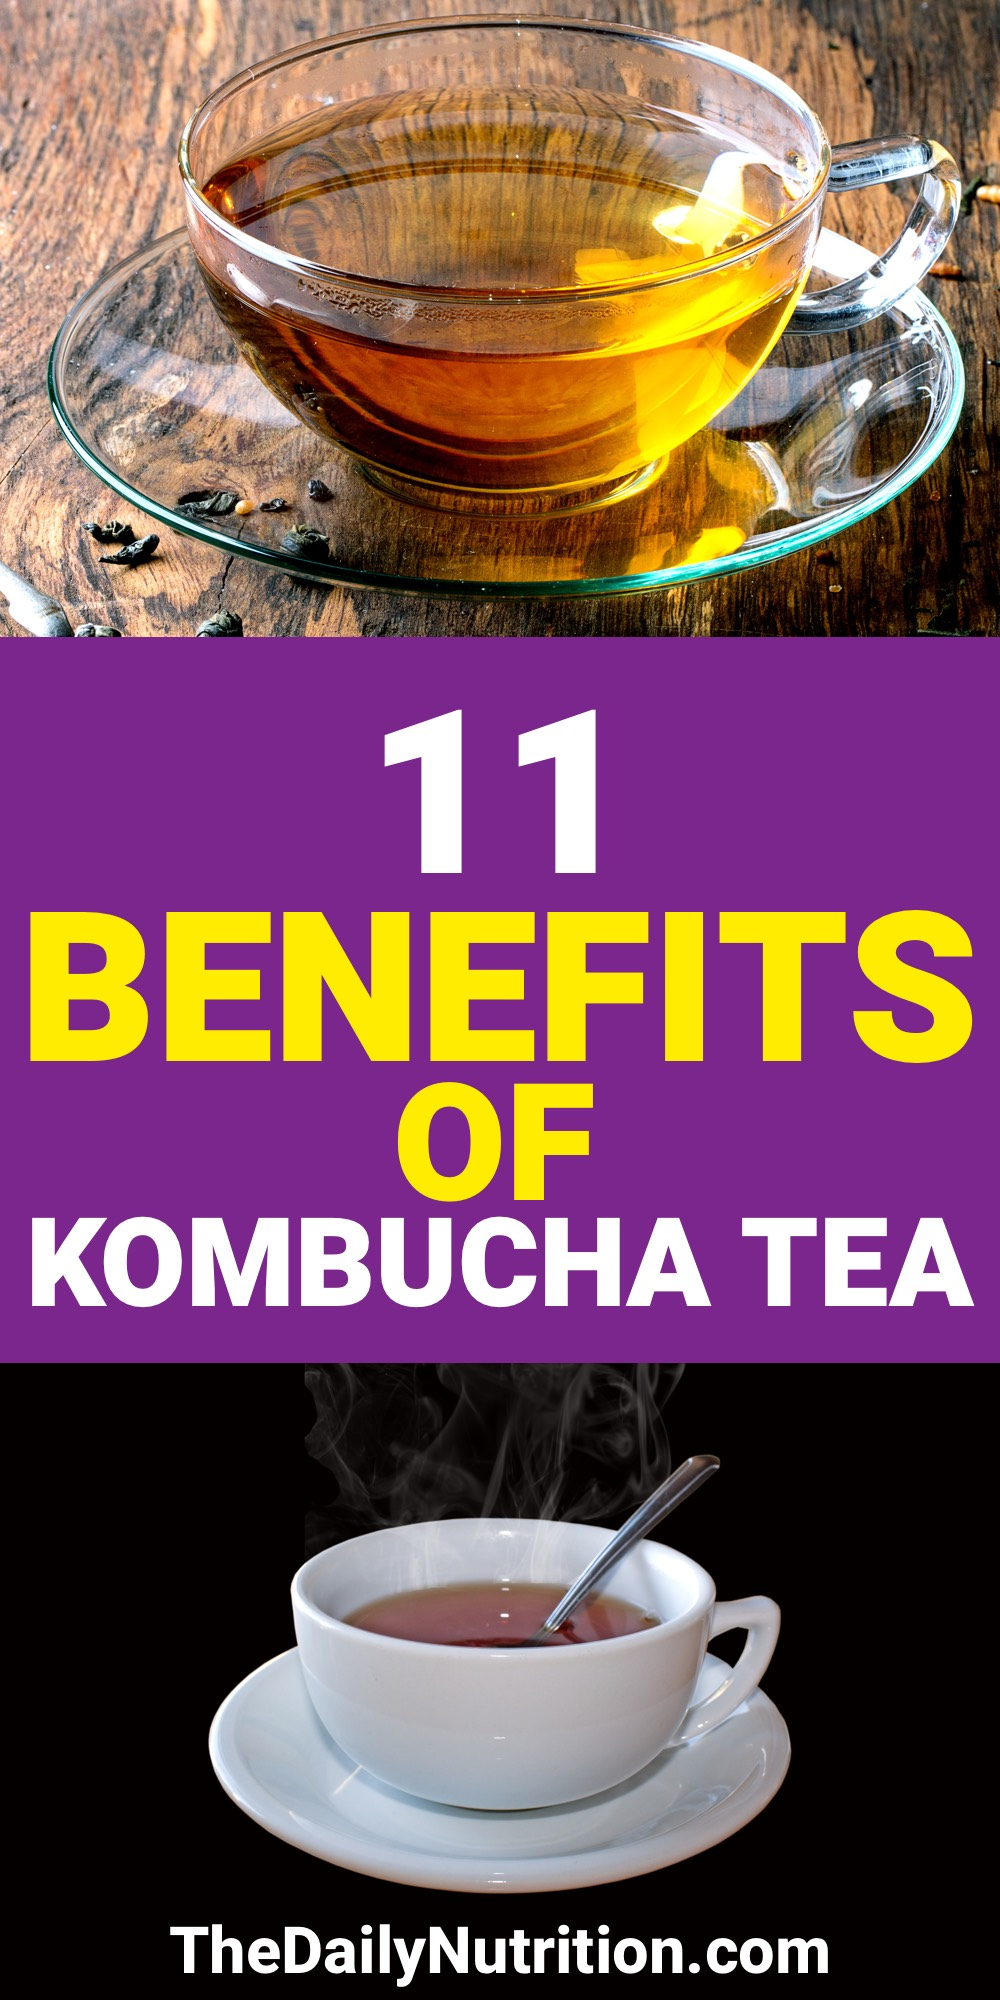 Having kombucha tea is going to all you to improve your health. Kombucha health benefits are going to be great for anyone that has just one cup of it.